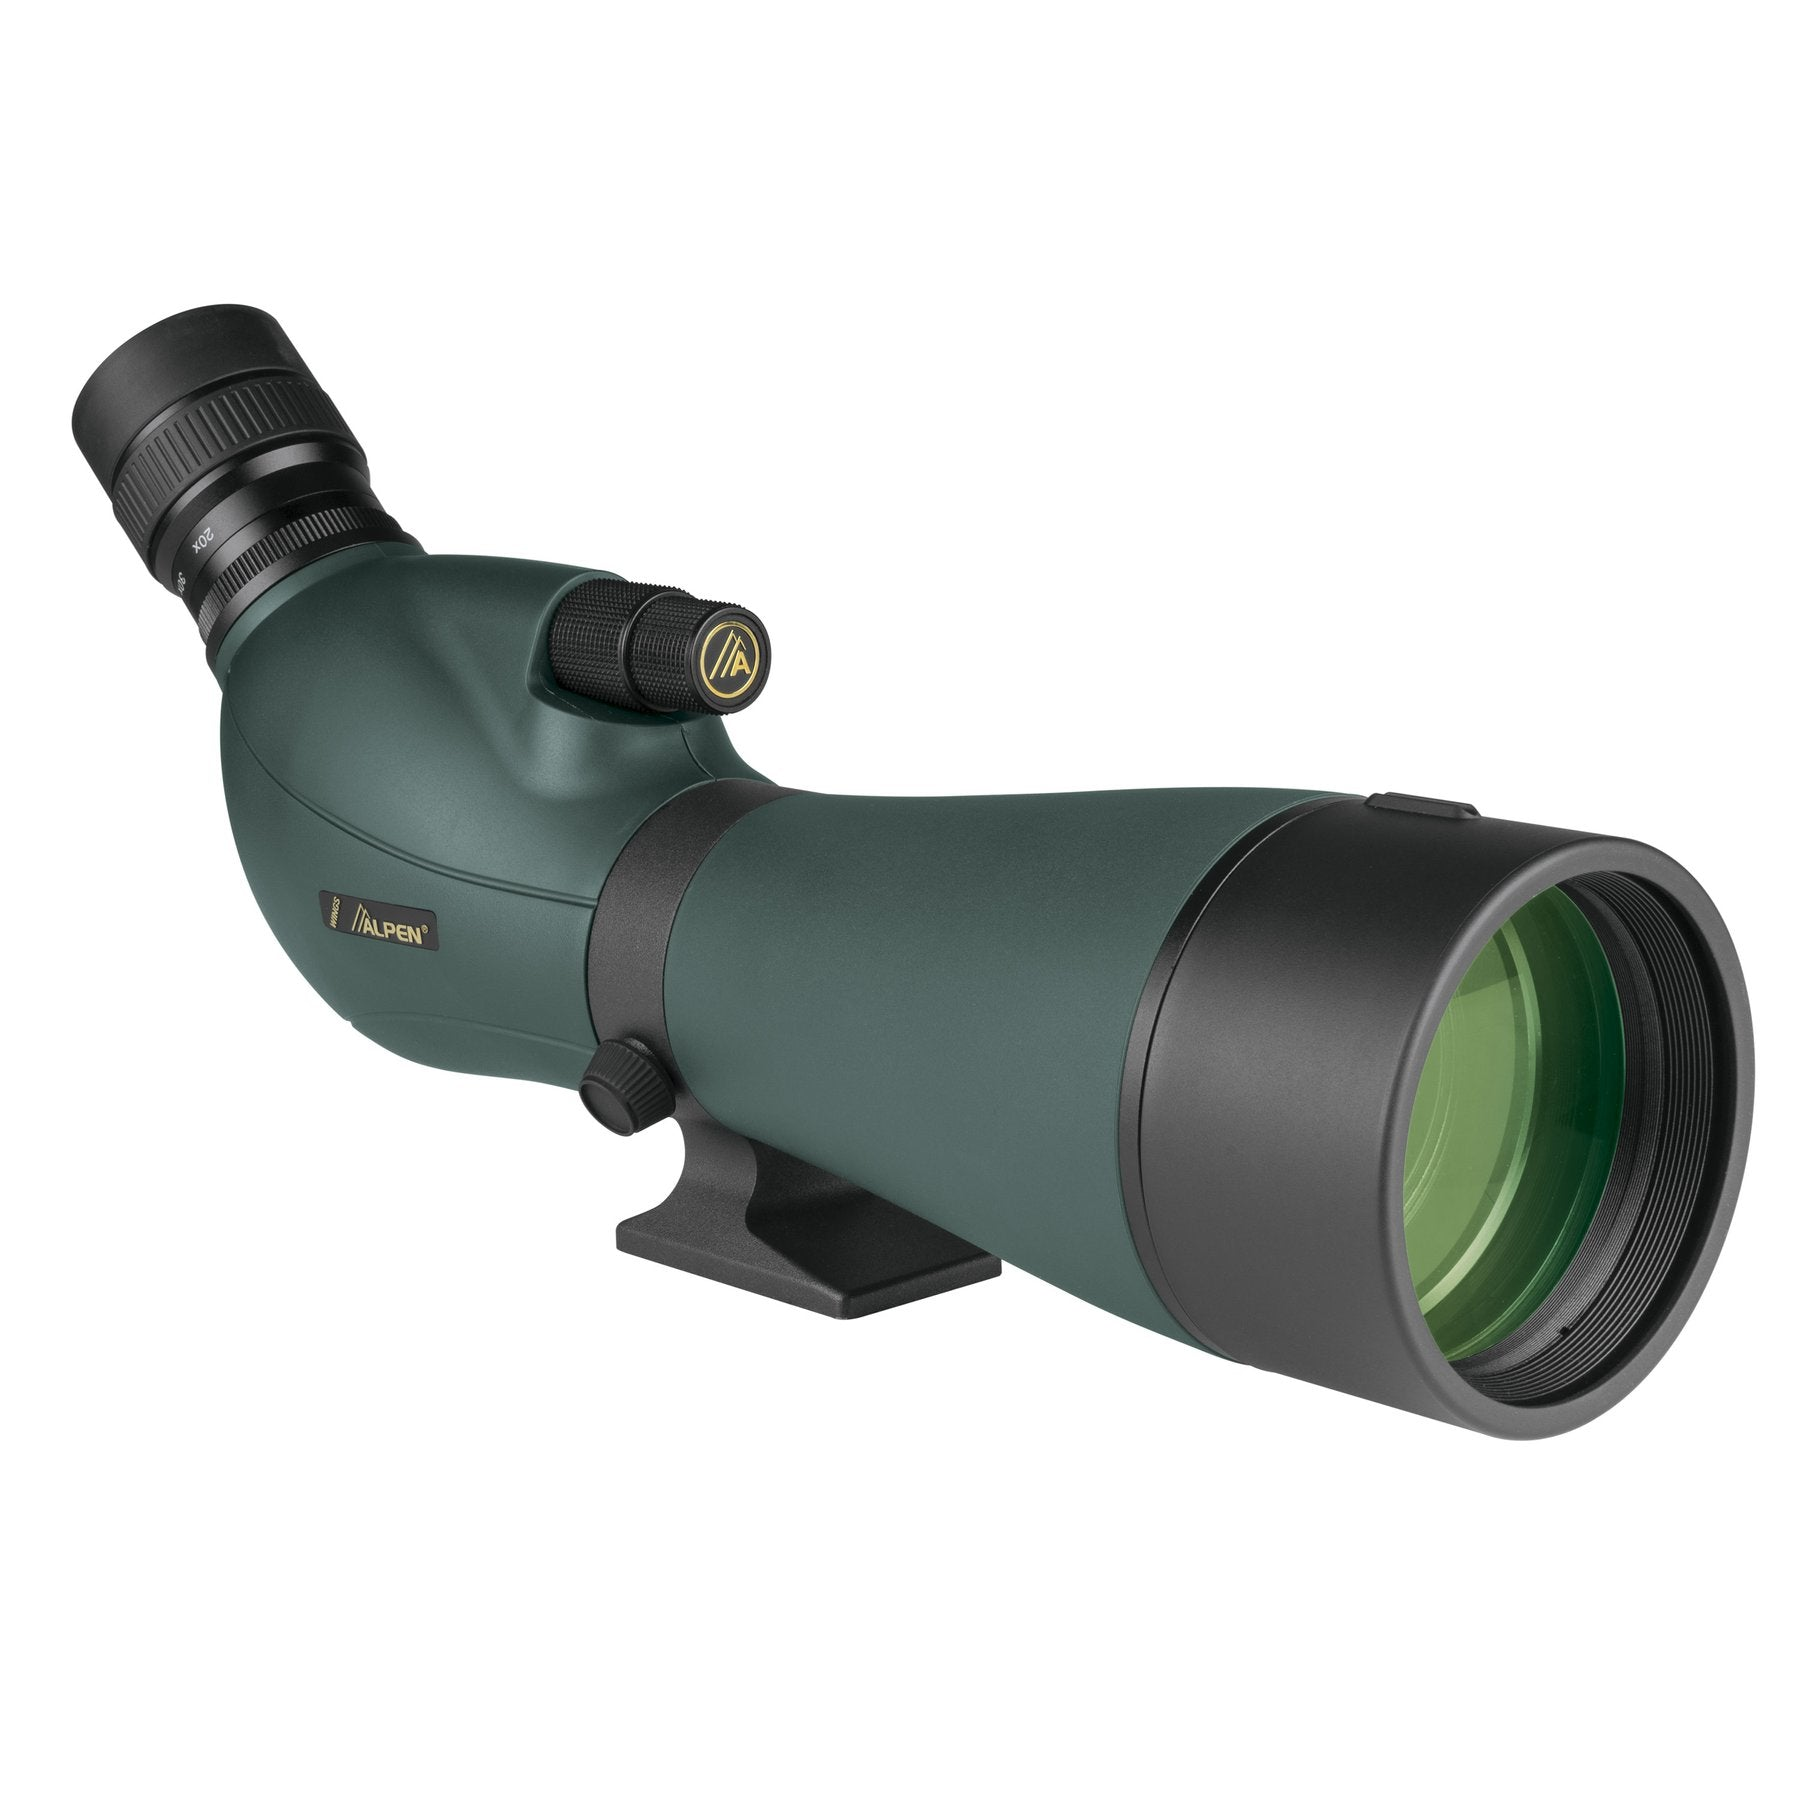 Alpen Wings 20-60x80mm Spotting Scope